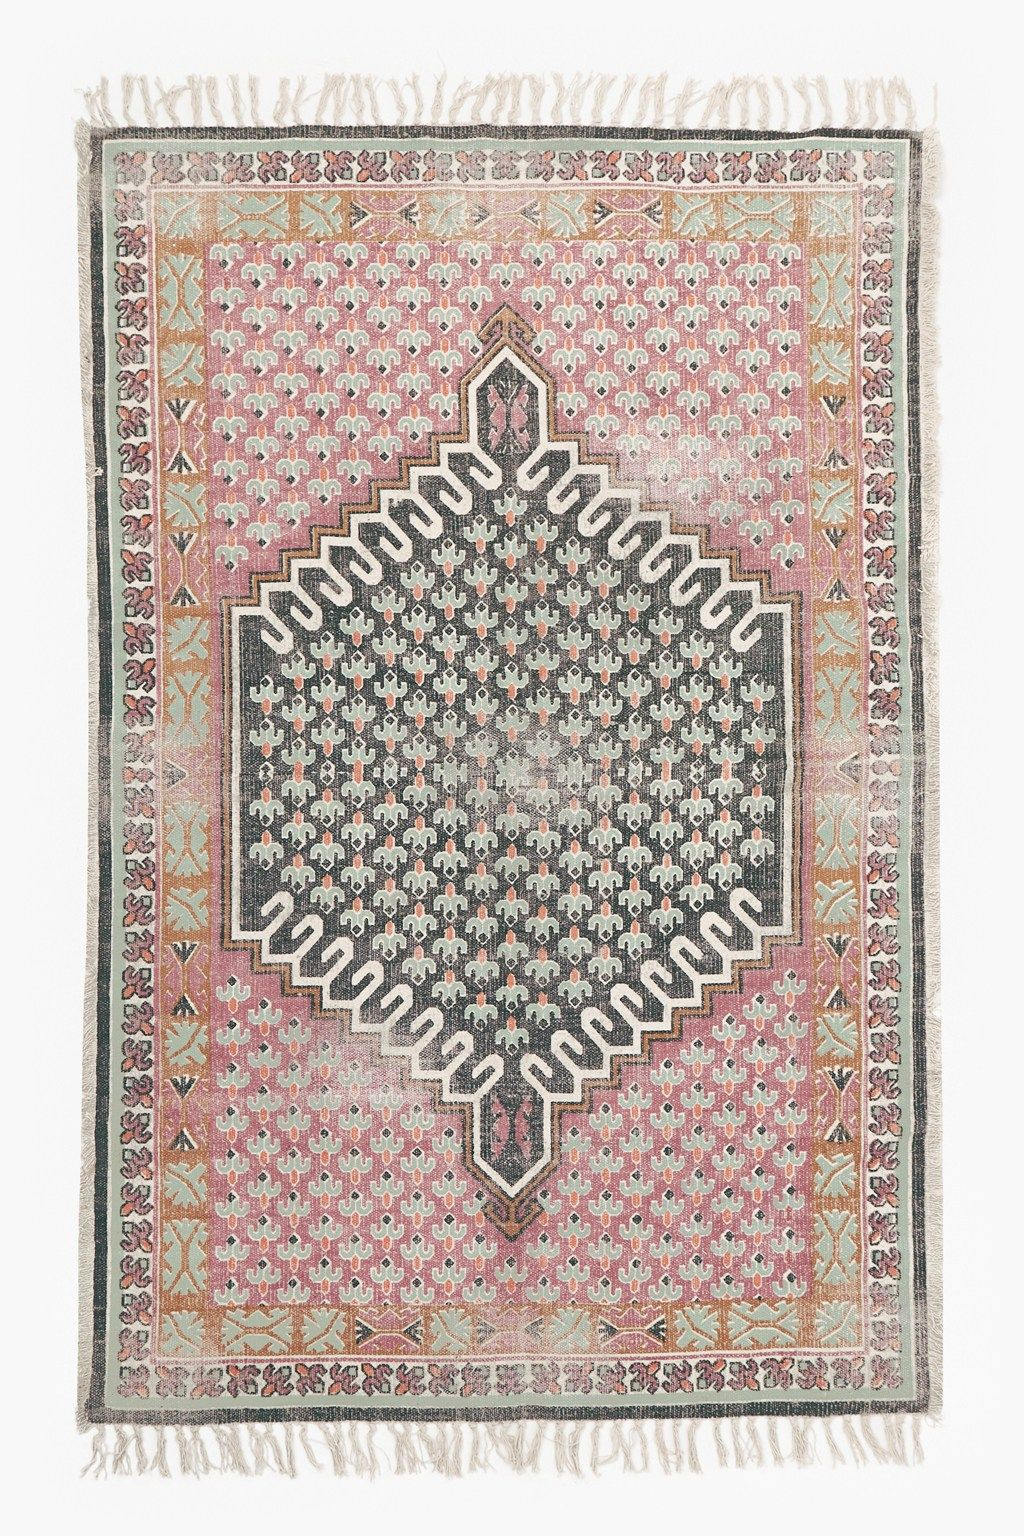 French Connection Poppy Field Rug Pink Walls Poppy Rug Home Decor